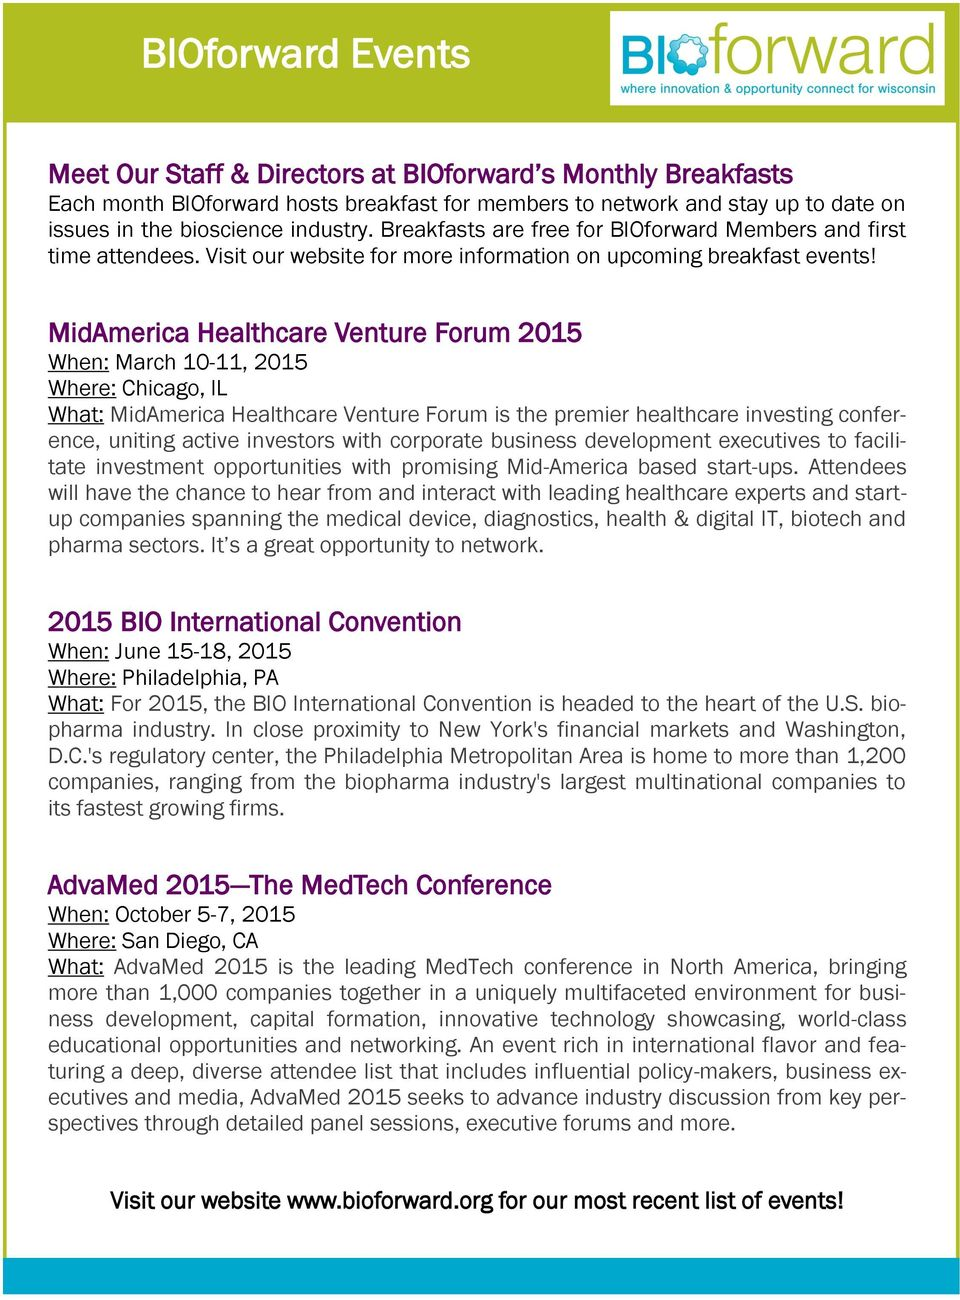 MidAmerica Healthcare Venture Forum 2015 When: March 10-11, 2015 Where: Chicago, IL What: MidAmerica Healthcare Venture Forum is the premier healthcare investing conference, uniting active investors